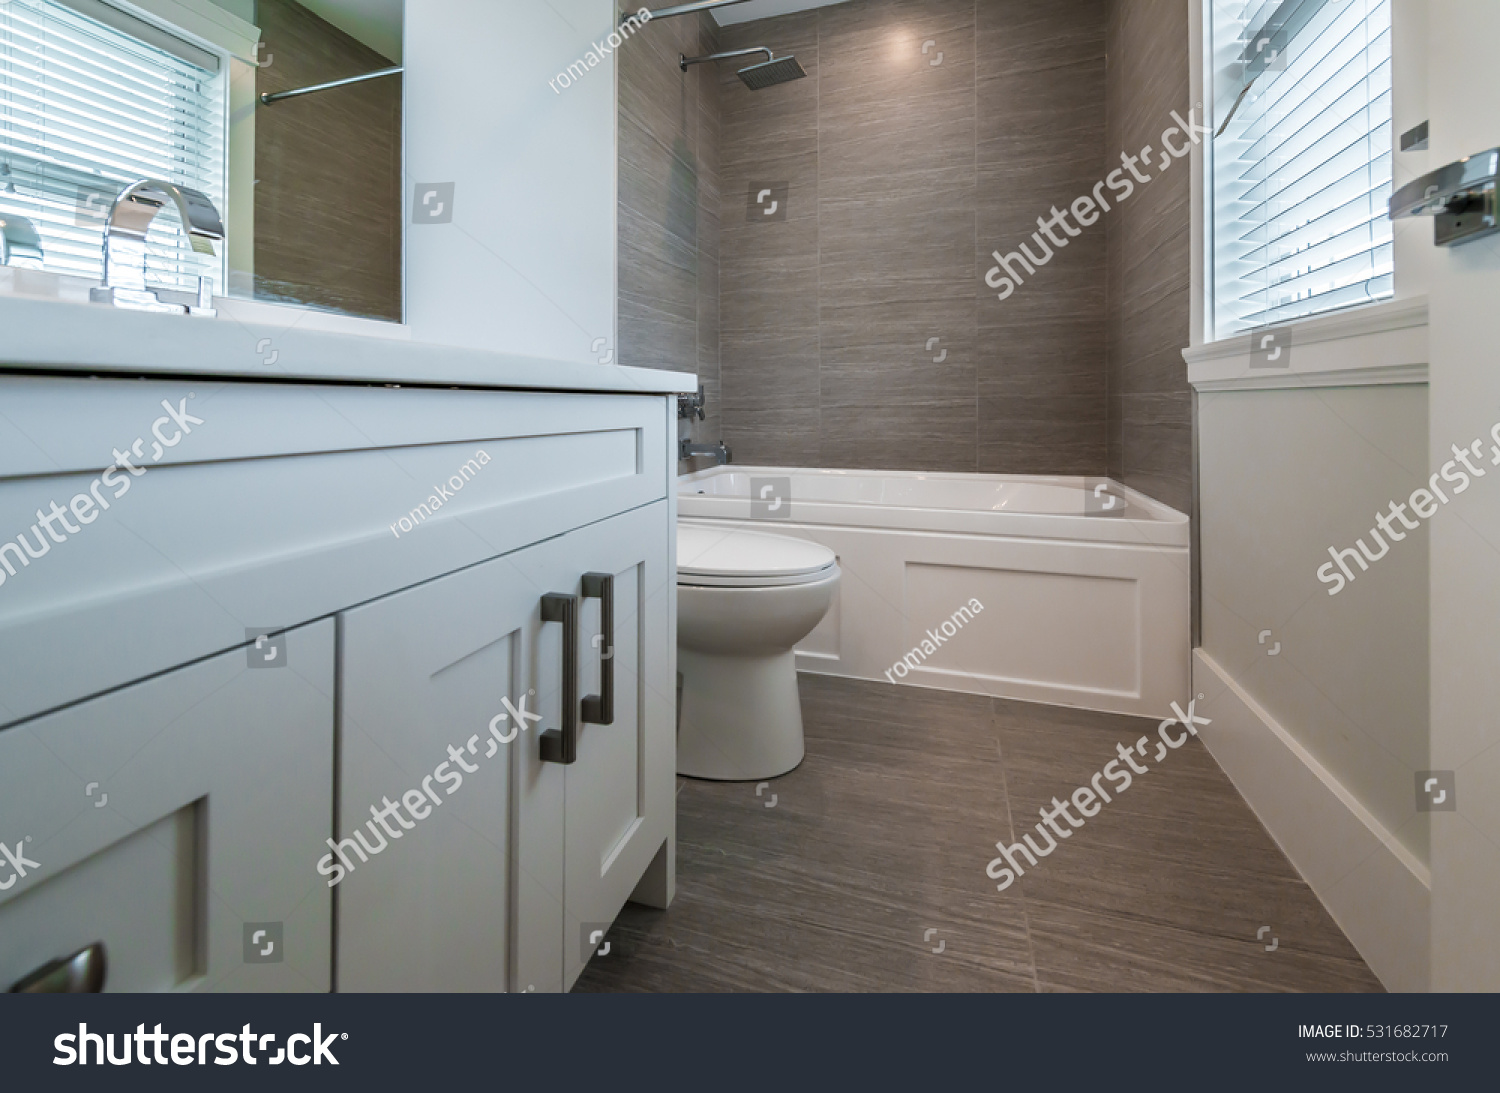 Nicely Decorated Modern Washroom Bathroom Toilet Stock Photo ...